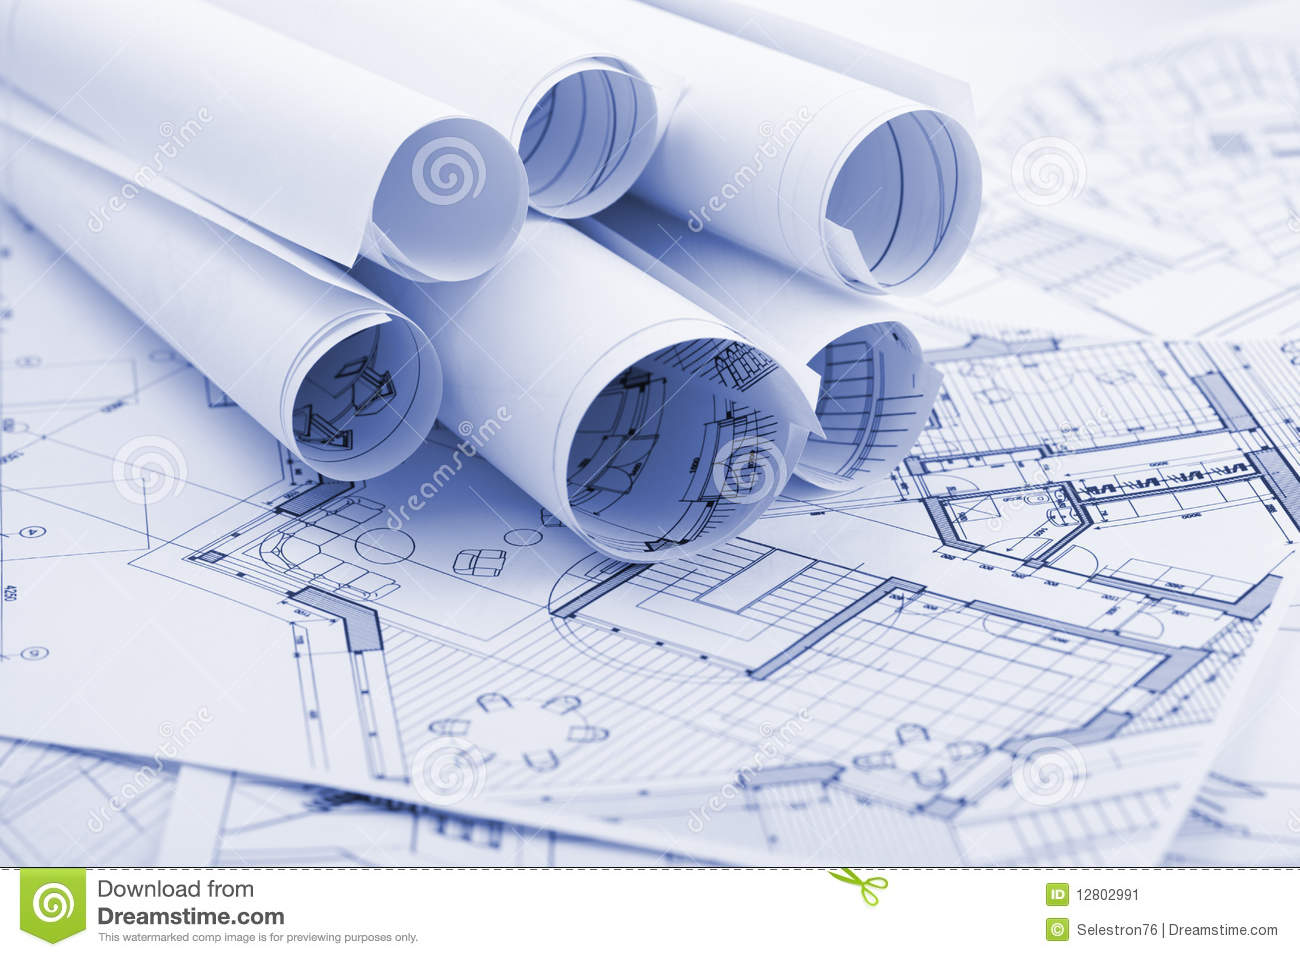 Architecture Plans Stock Image - Image: 12802991